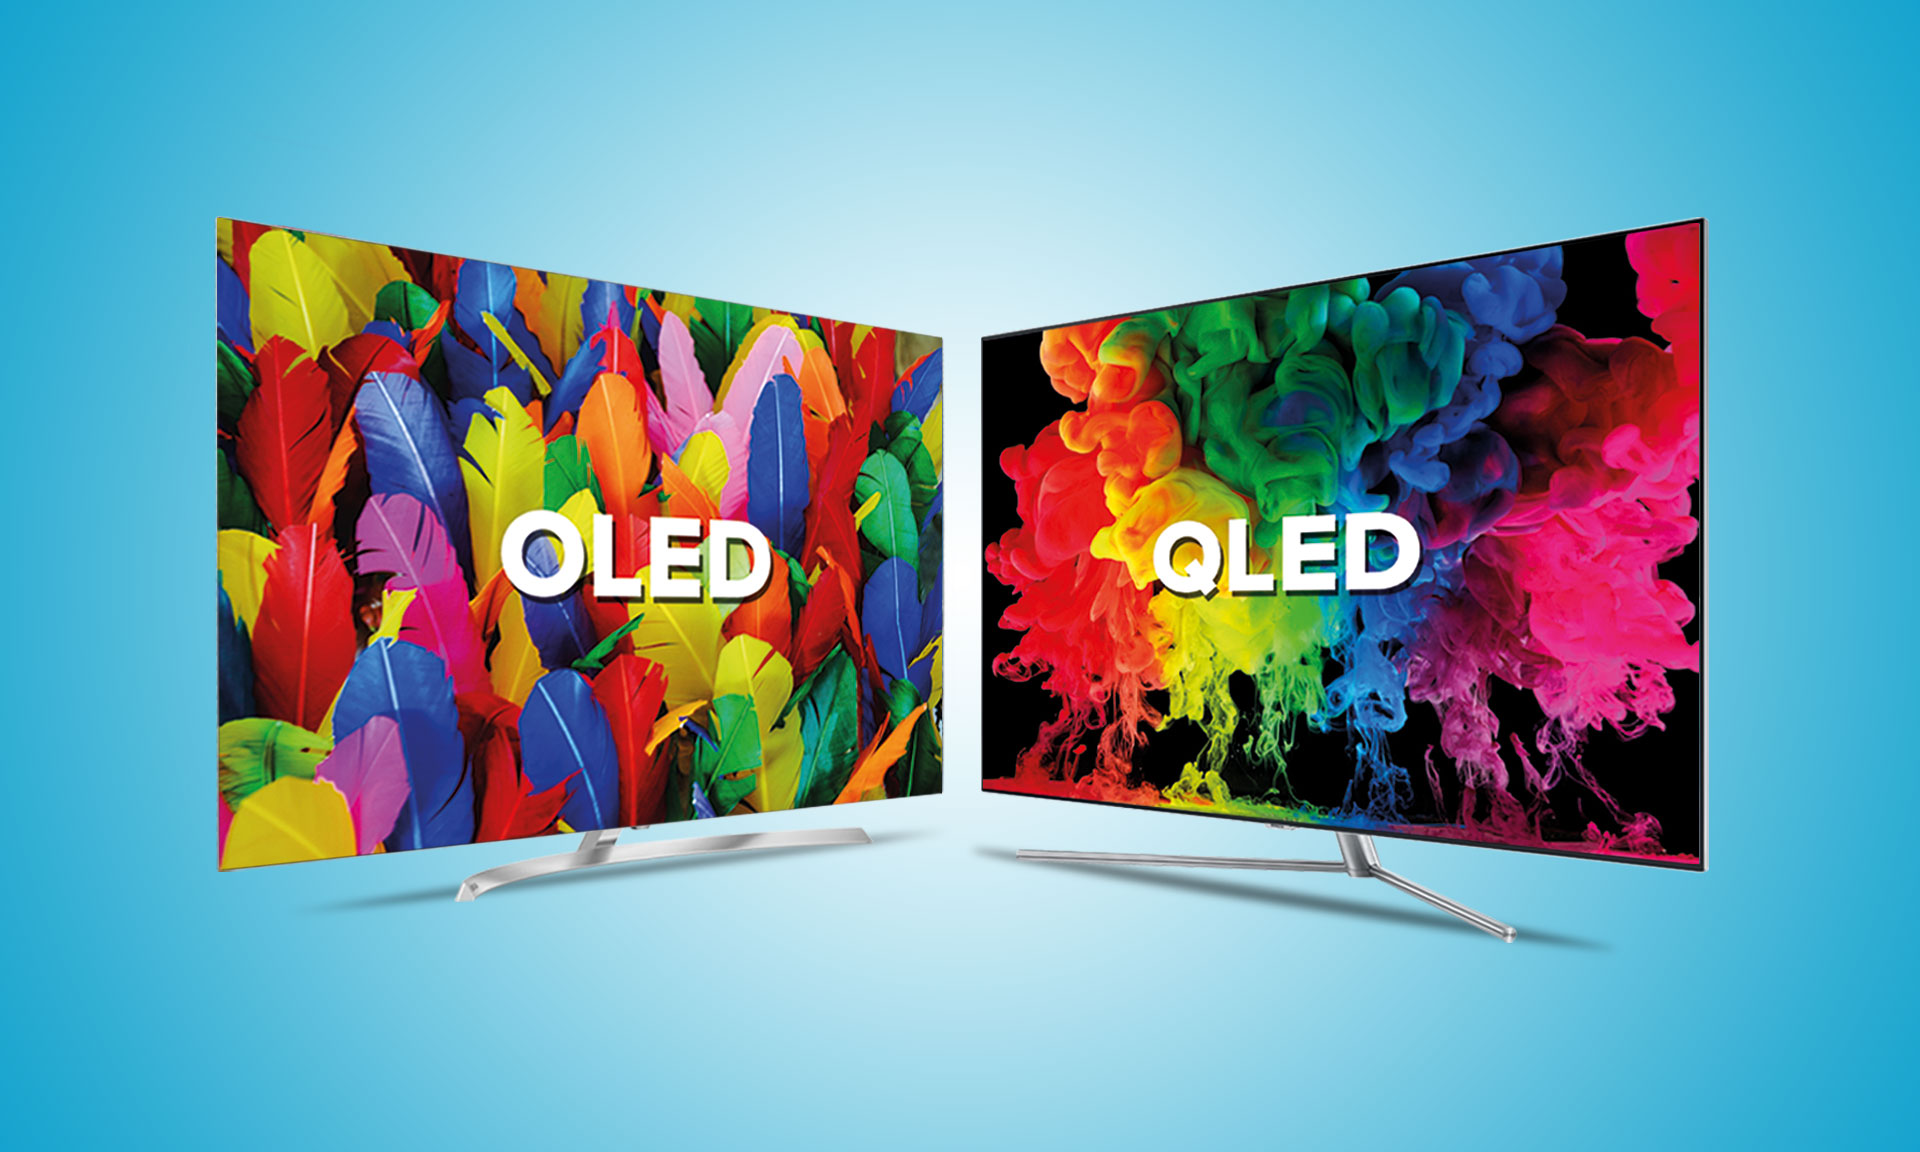 Samsung vs LG: who has unveiled the best TV for 2018